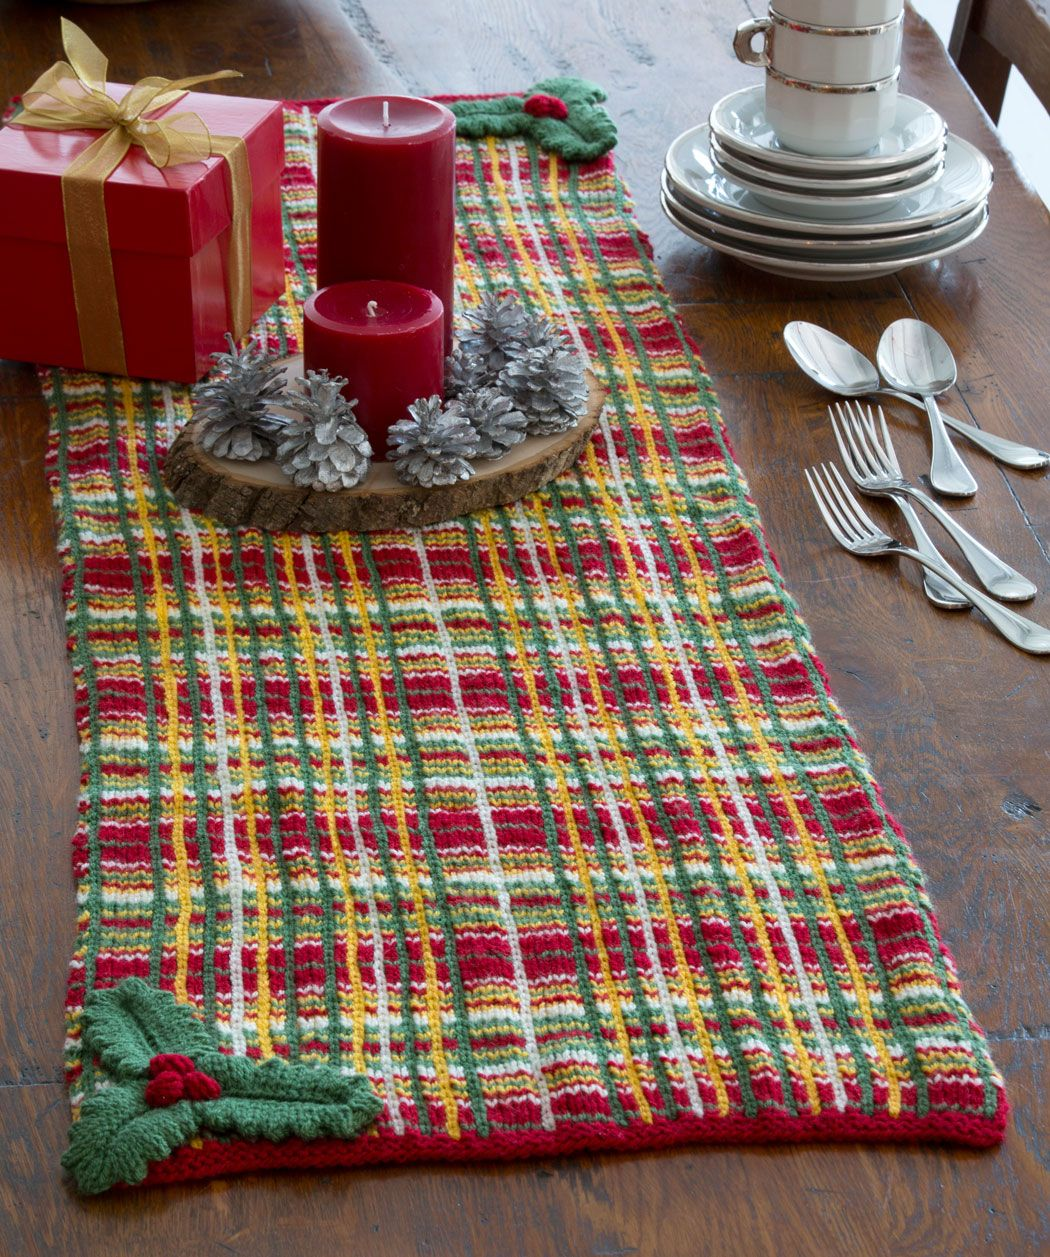 Holiday Table Runner Free Knitting Pattern From Red Heart